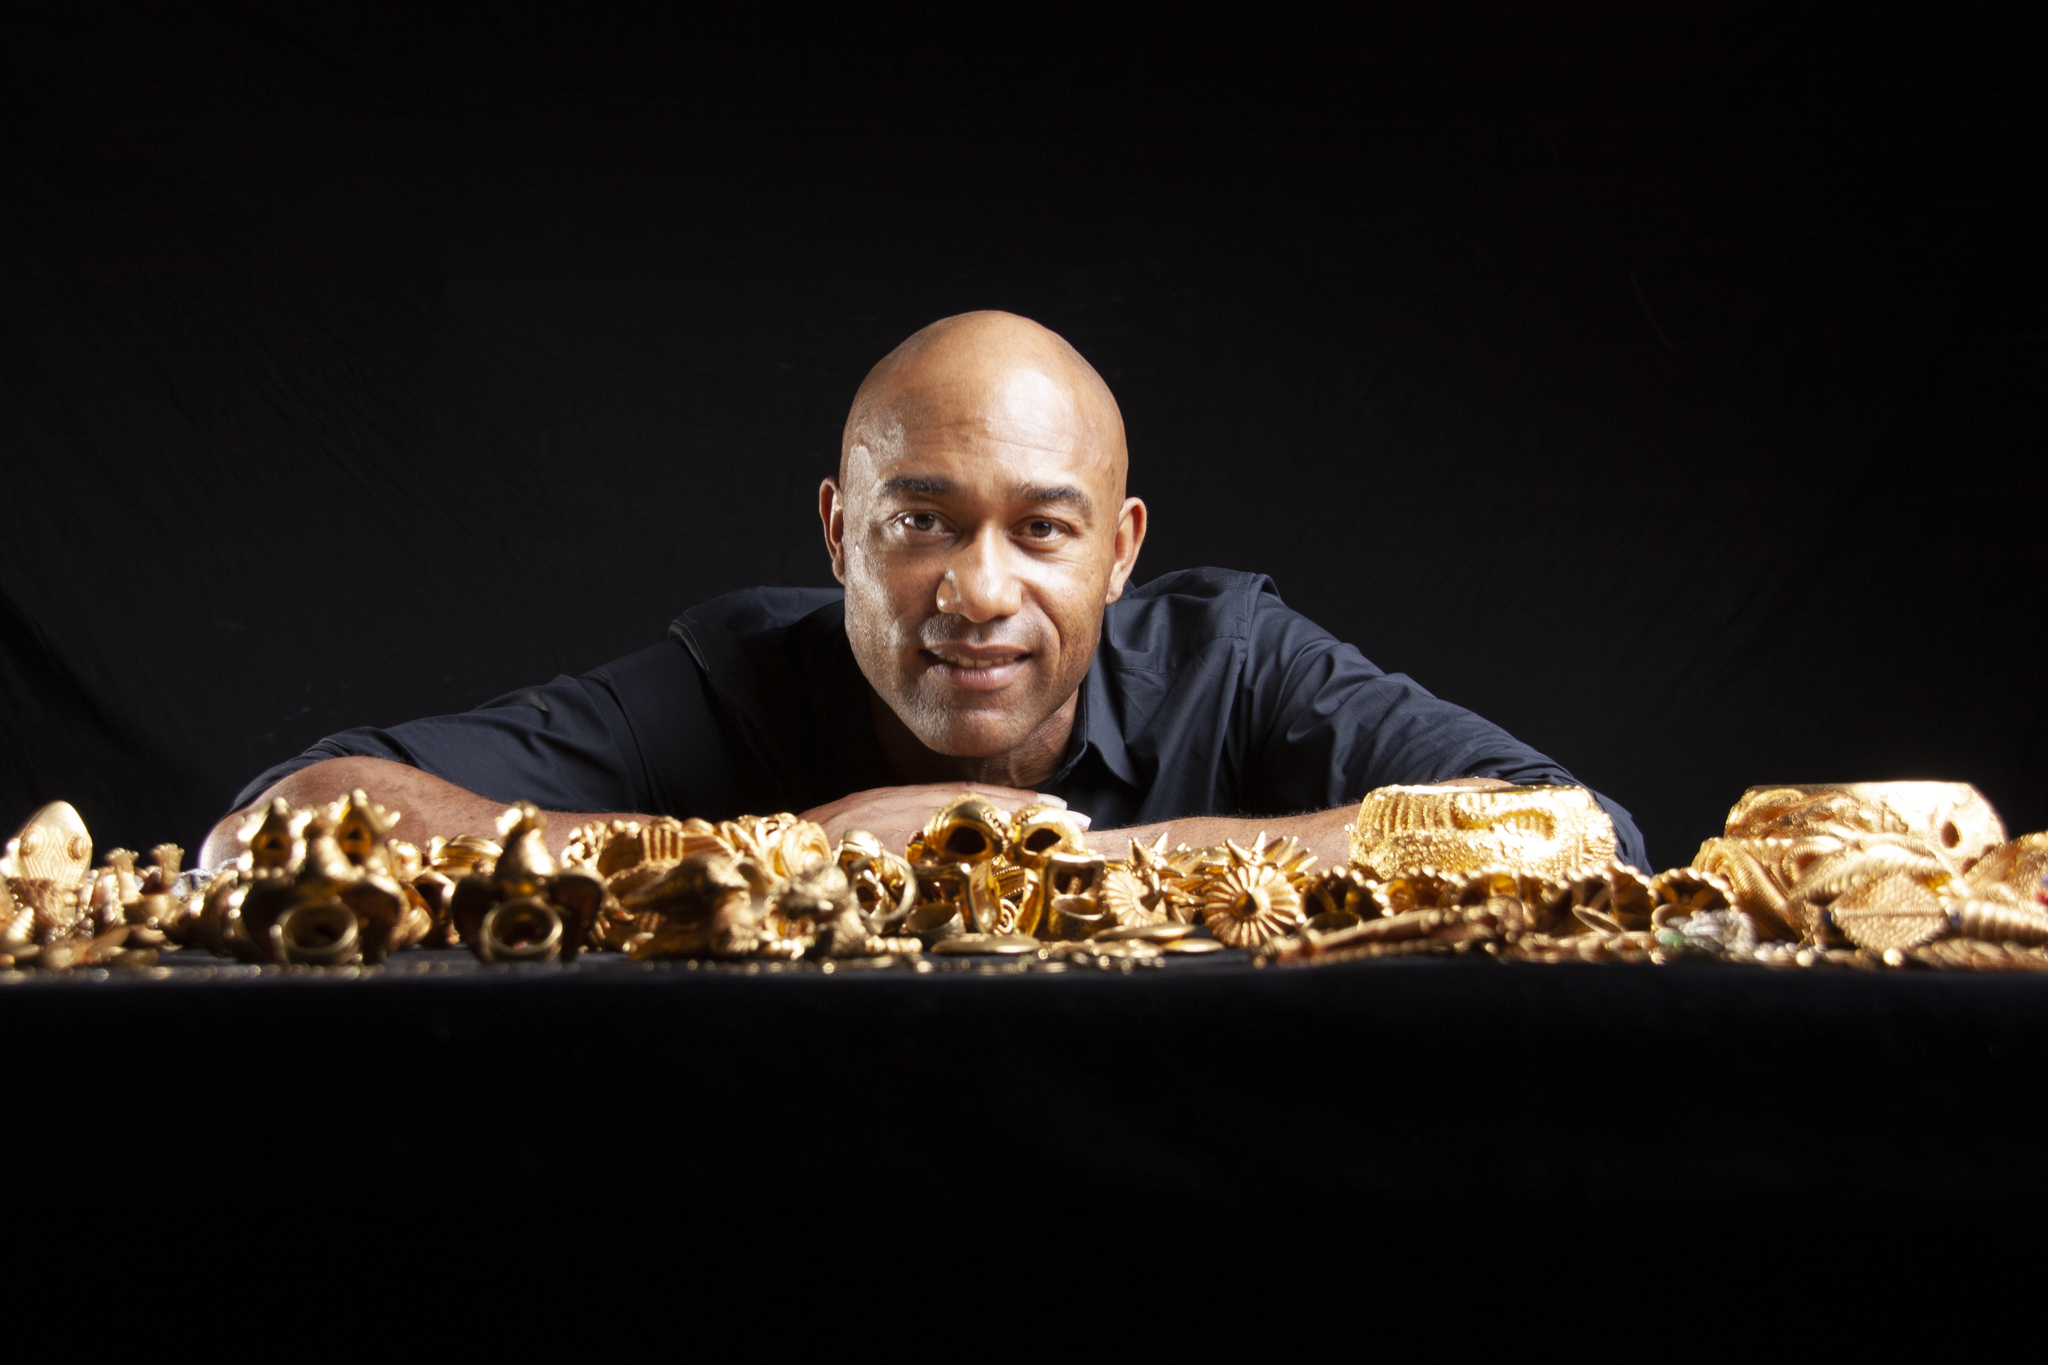 Smithsonian's Gus Casely-Hayford Will Lead Hotly Anticipated New Victoria & Albert Museum Outpost in London